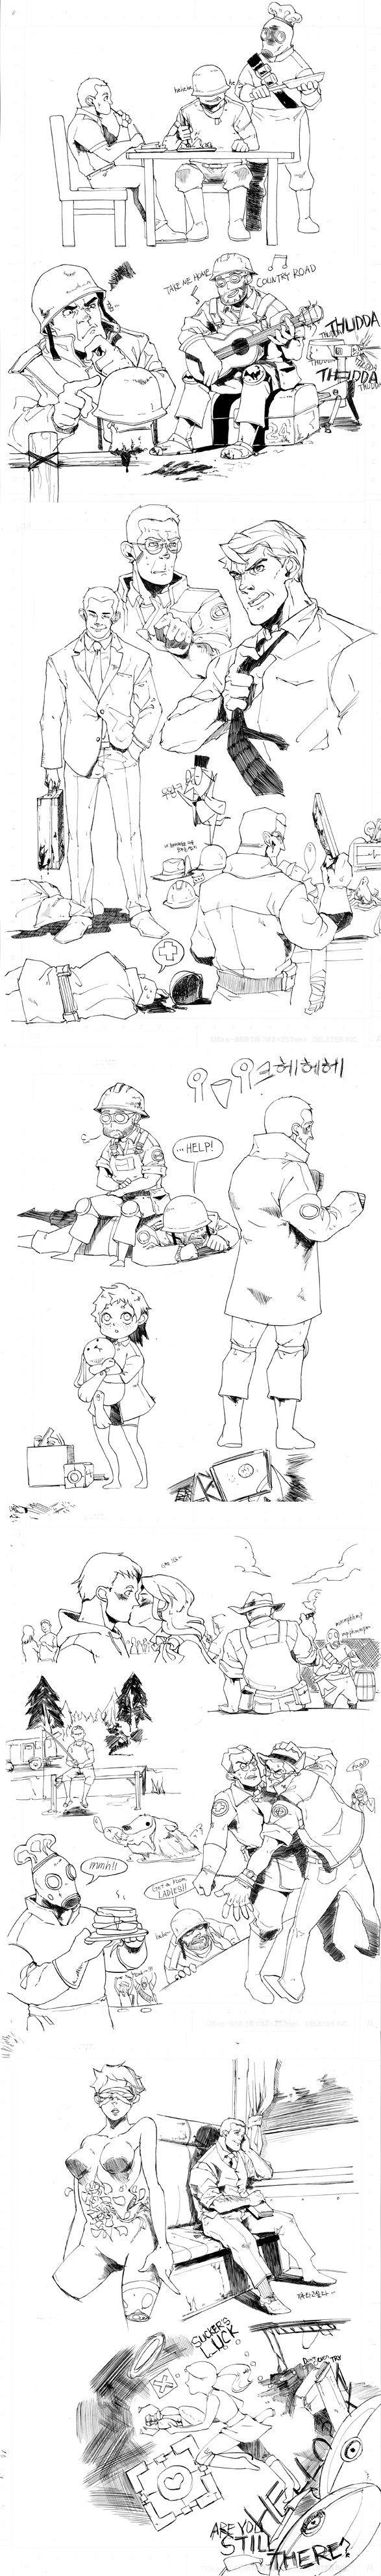 TF2 doodles2 by metope87